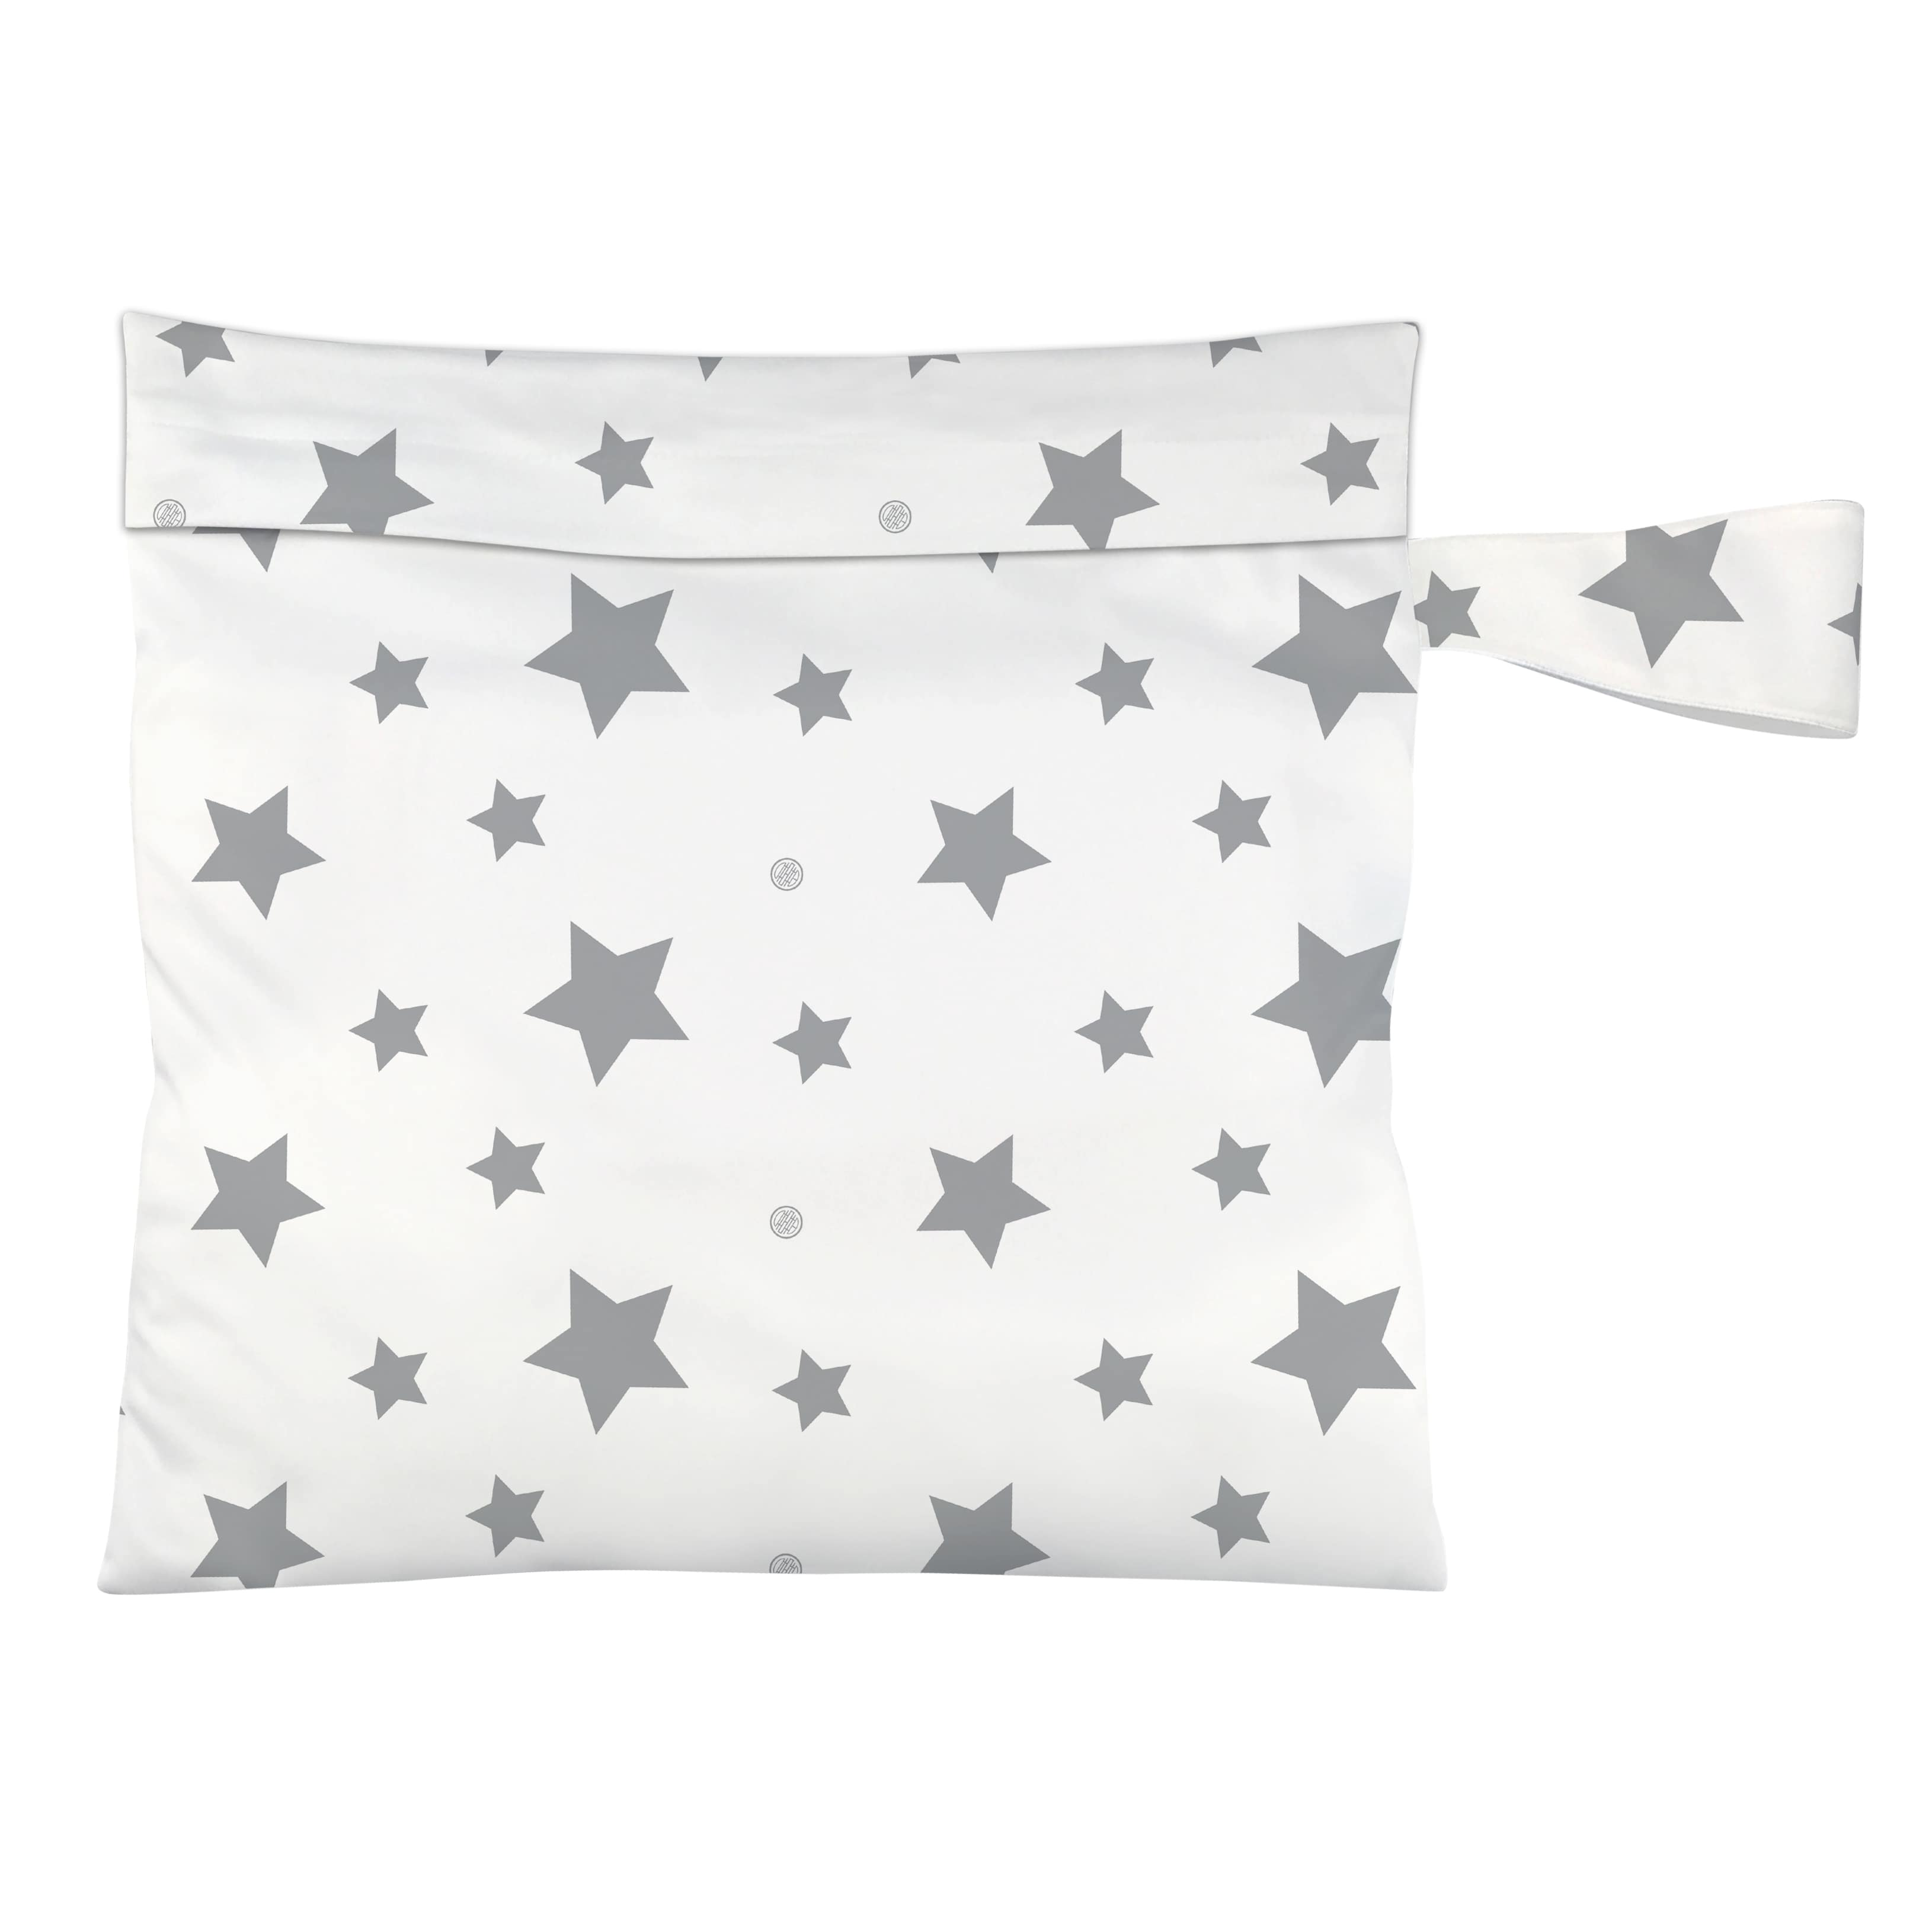 Windelbeutel Twinkle Little Star Grey